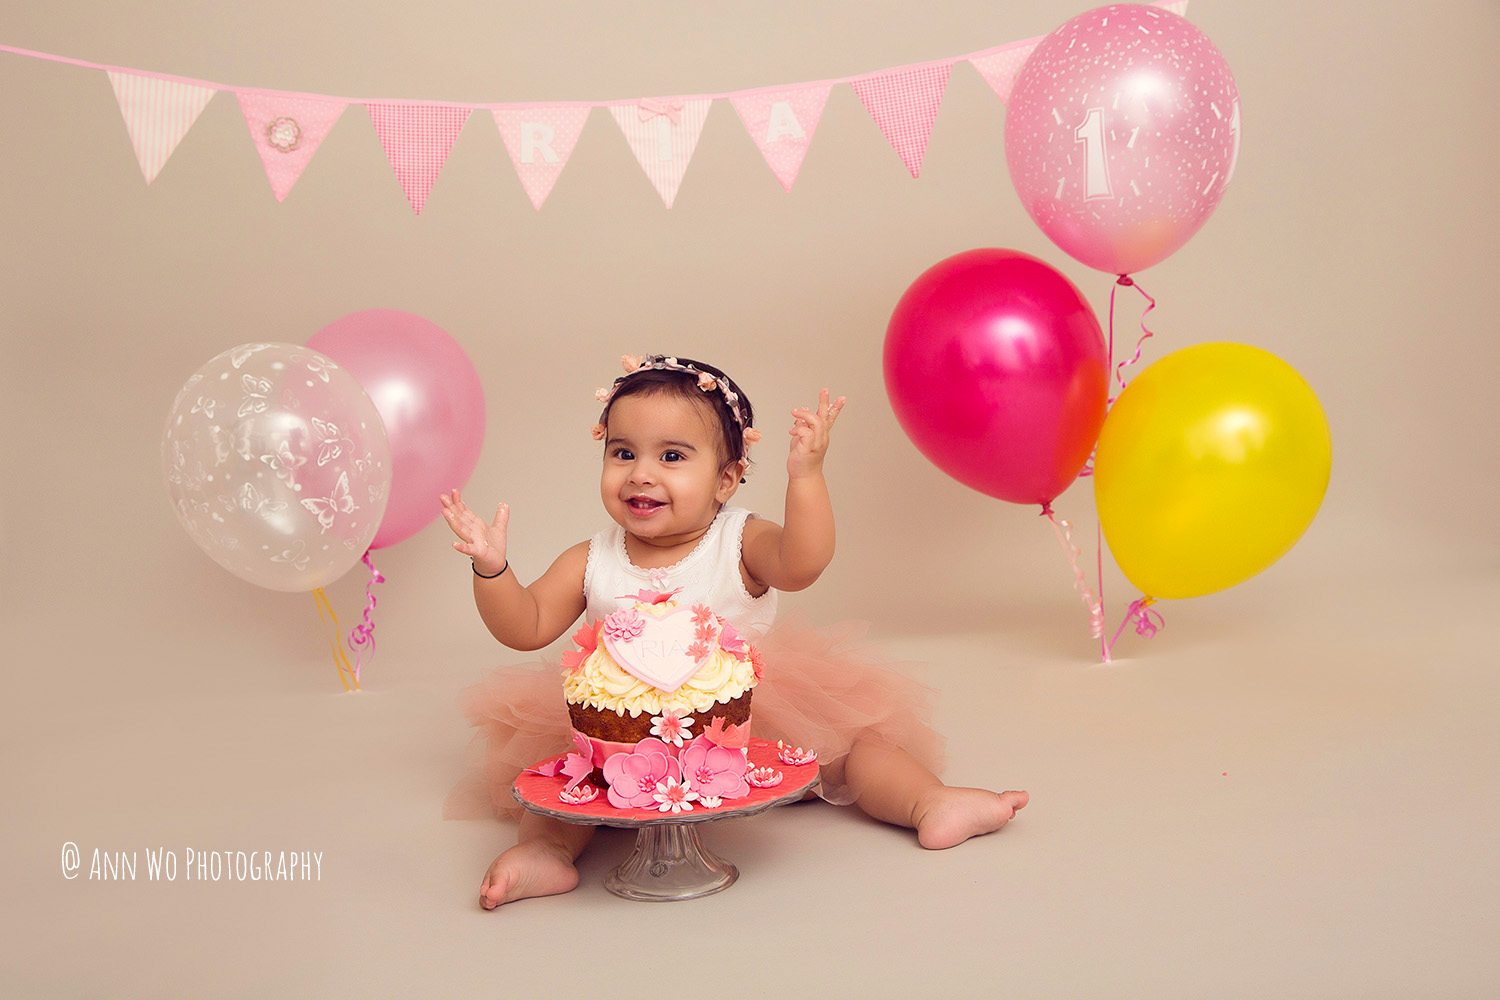 cake-smash-ria-london-baby-photographer14.jpg